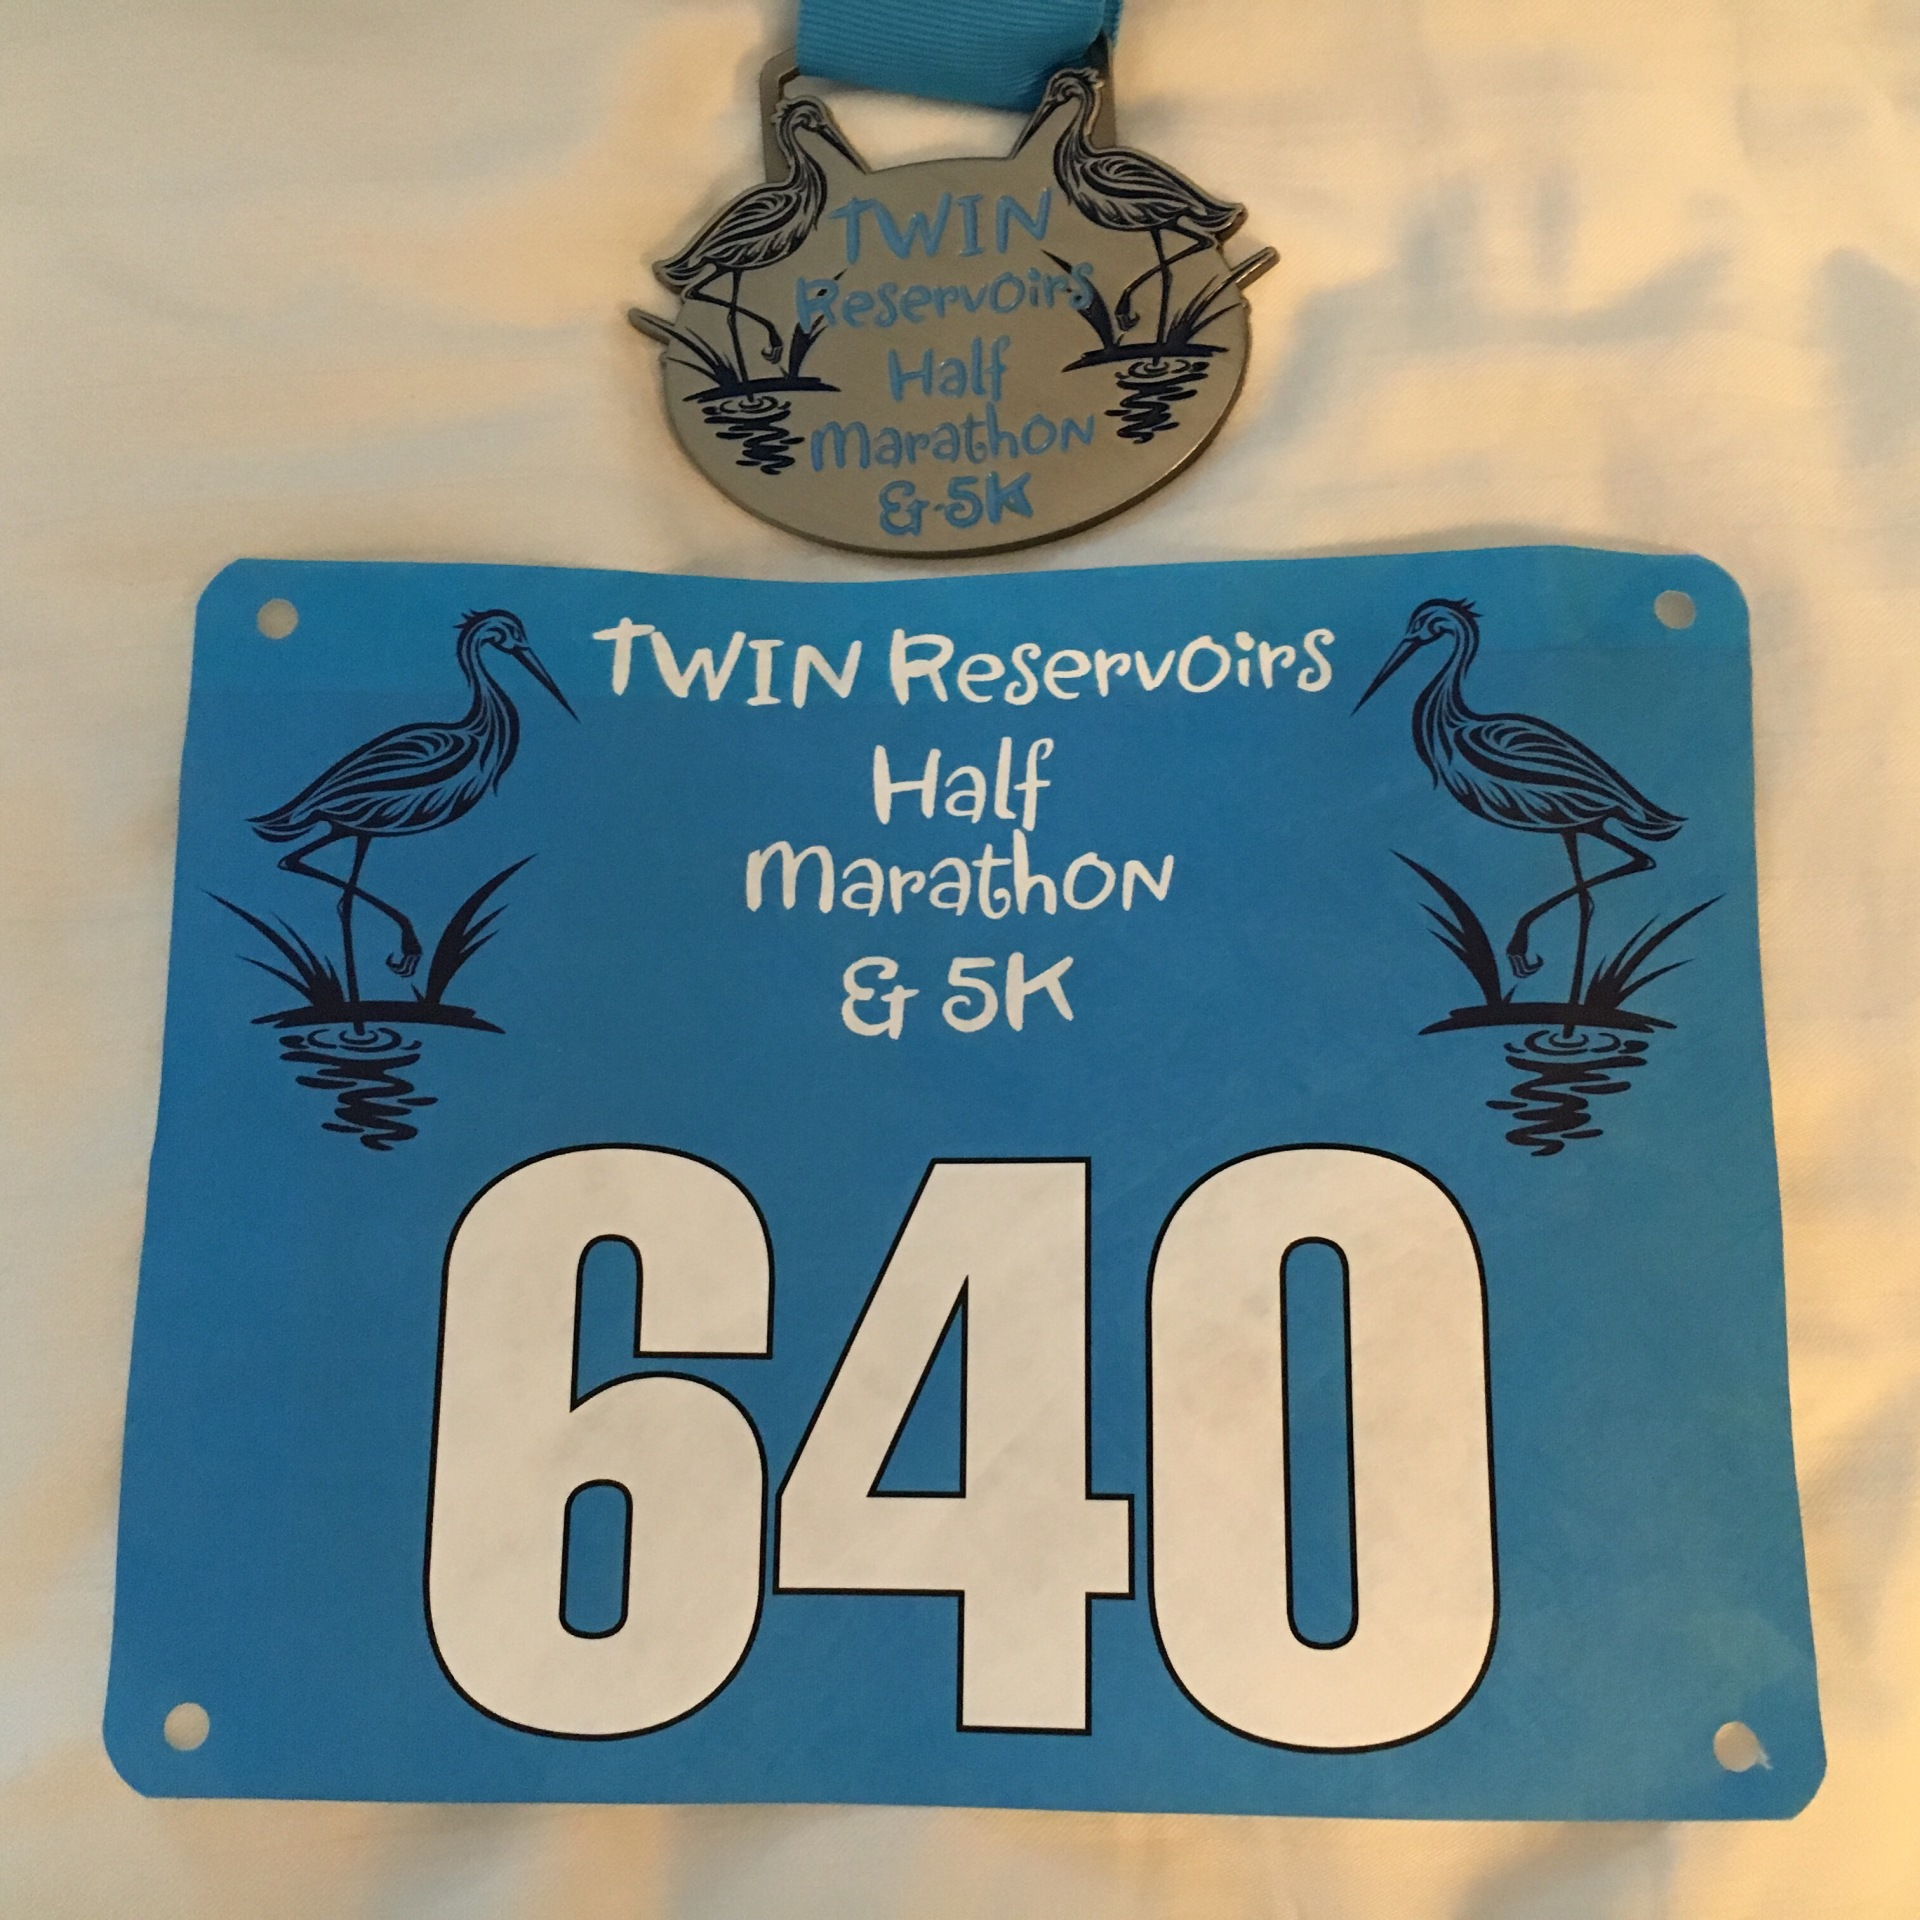 Bib and medal from the race.